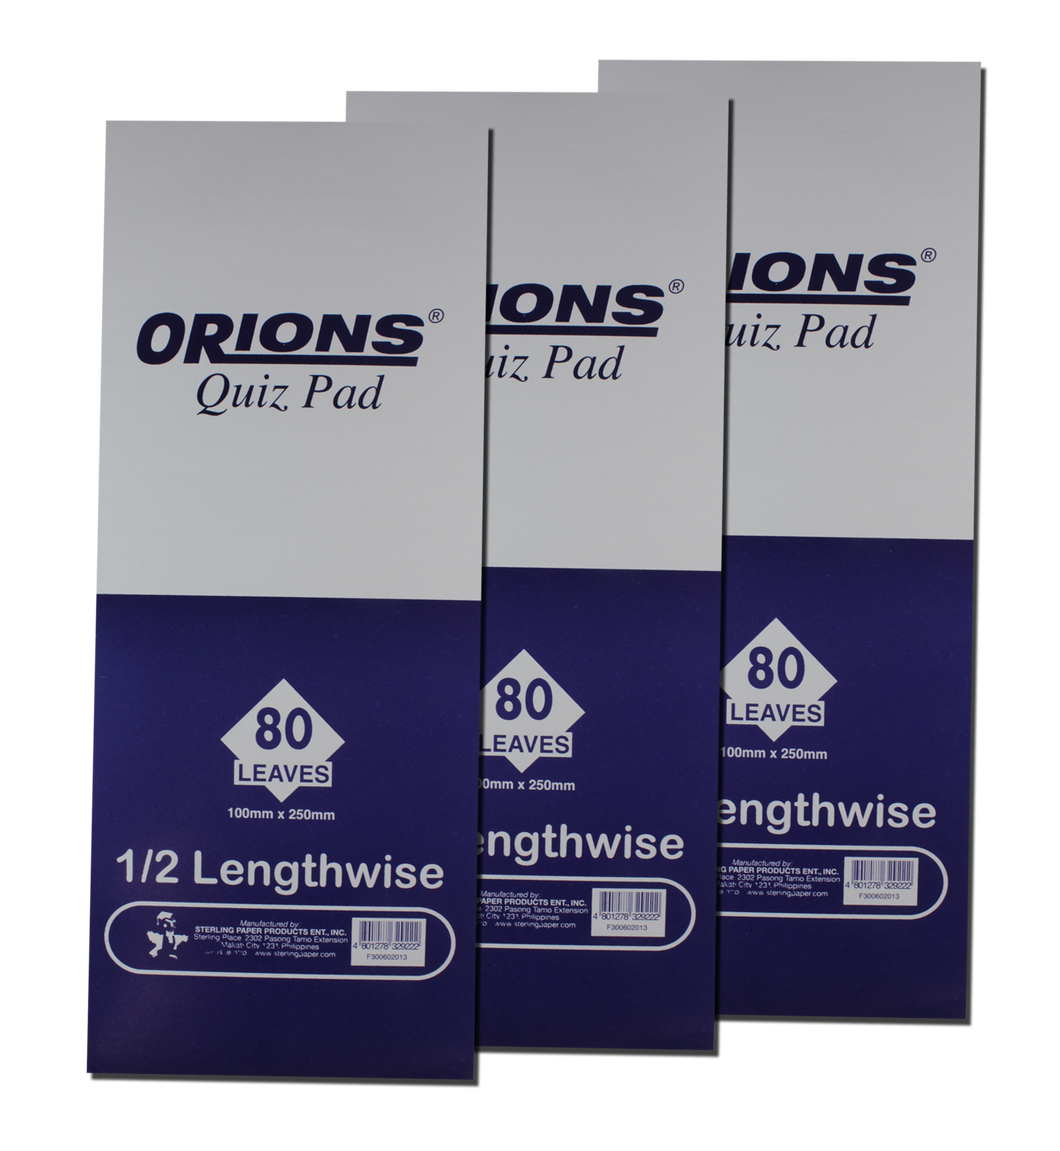 Orions <br> Quiz Pad (1/2 Lengthwise) <br> Pack of 3